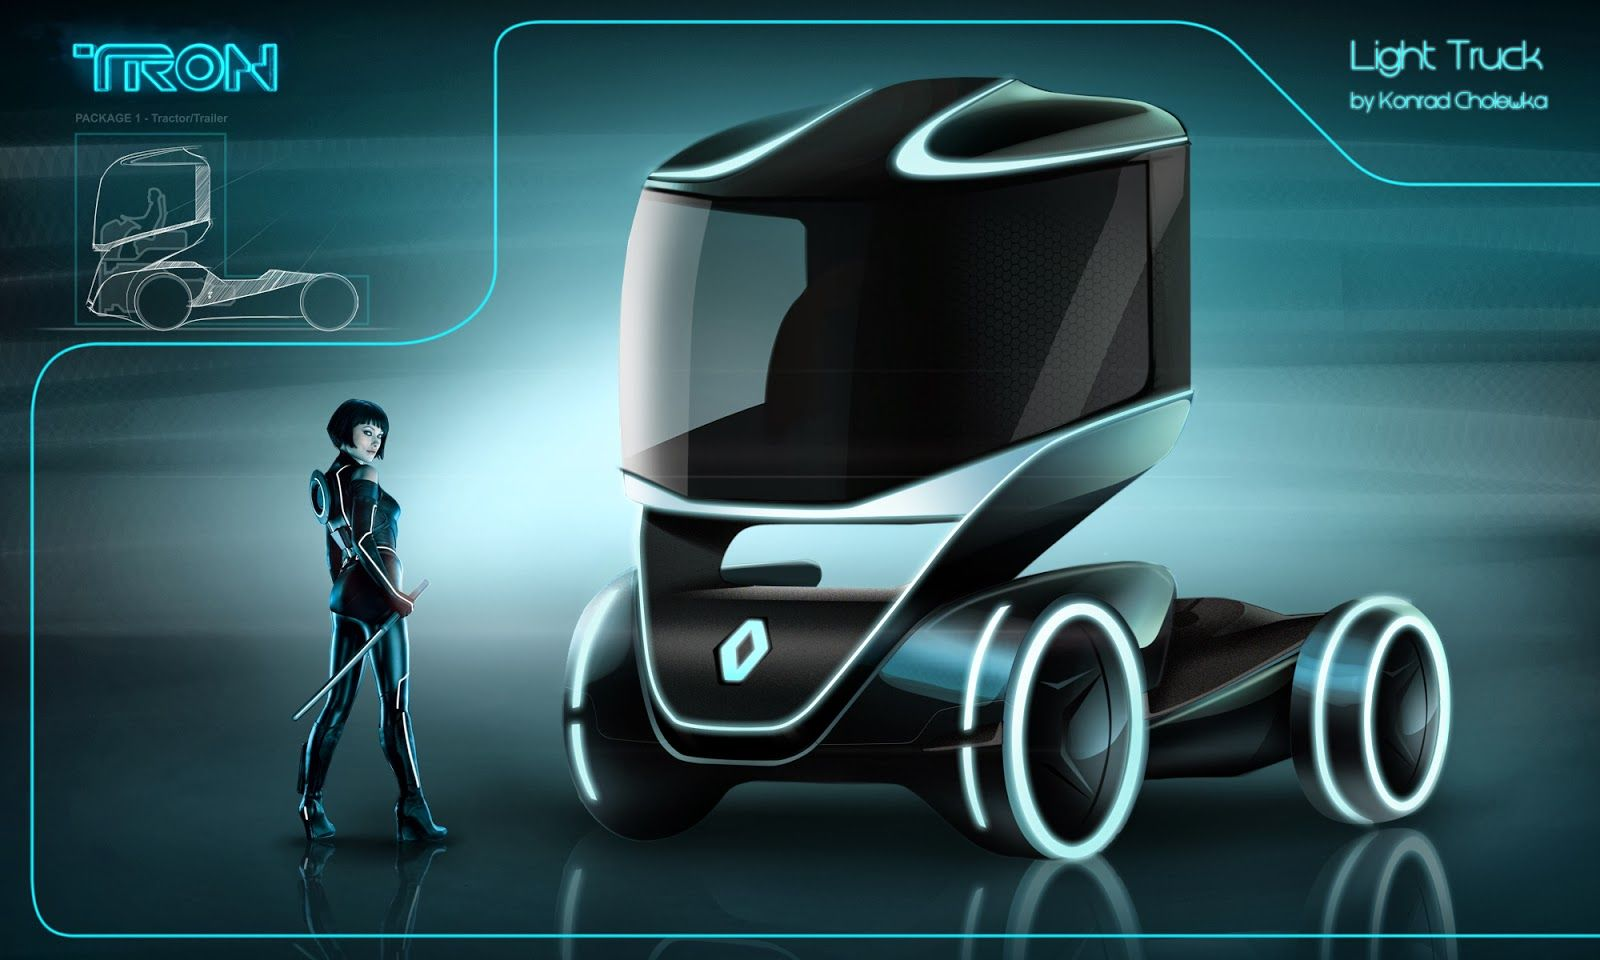 Image Result For Tron Truck Truck Design Electric Truck Concept Design